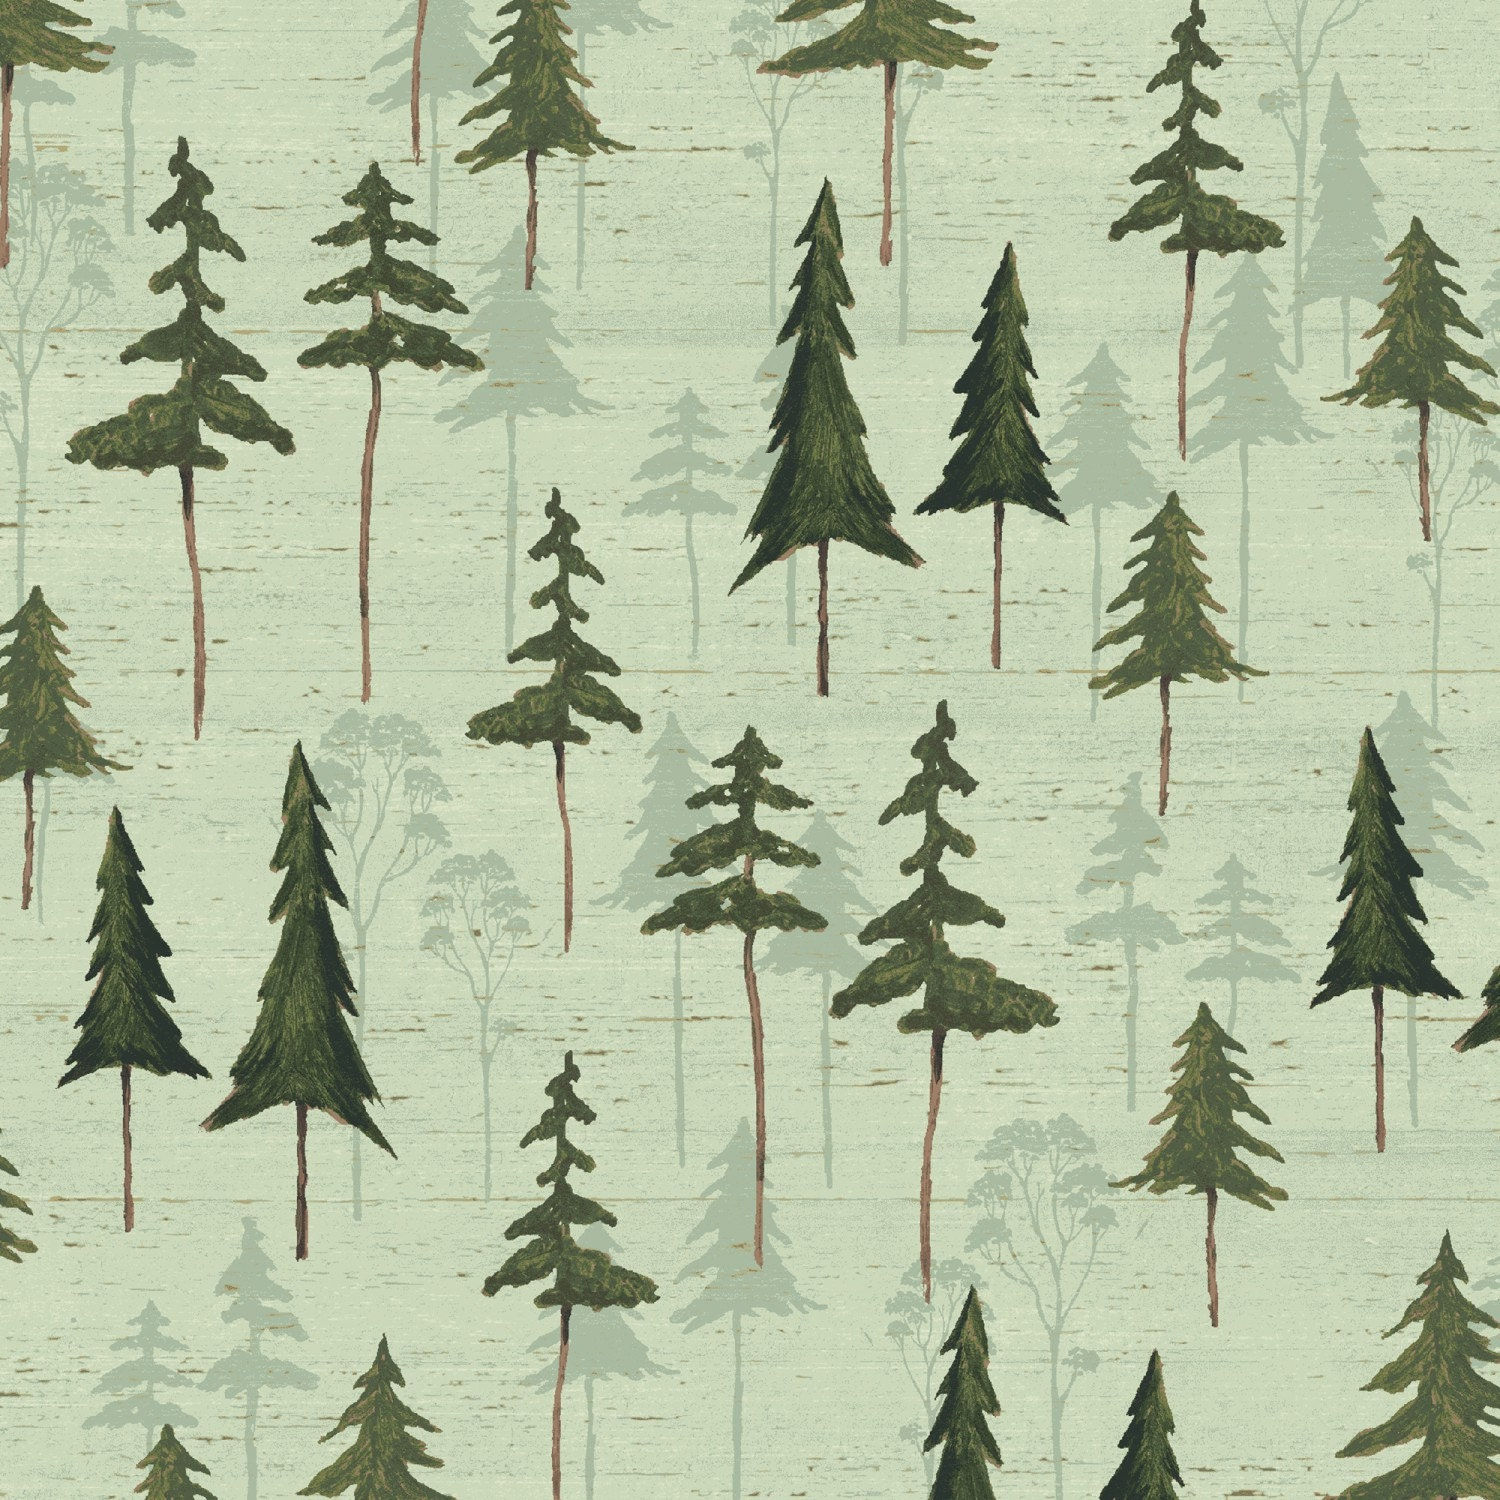 Sage Tree Silhouette Fabric-Wild Woods Windham-Forest Tree Fabric ... : pine tree quilt - Adamdwight.com